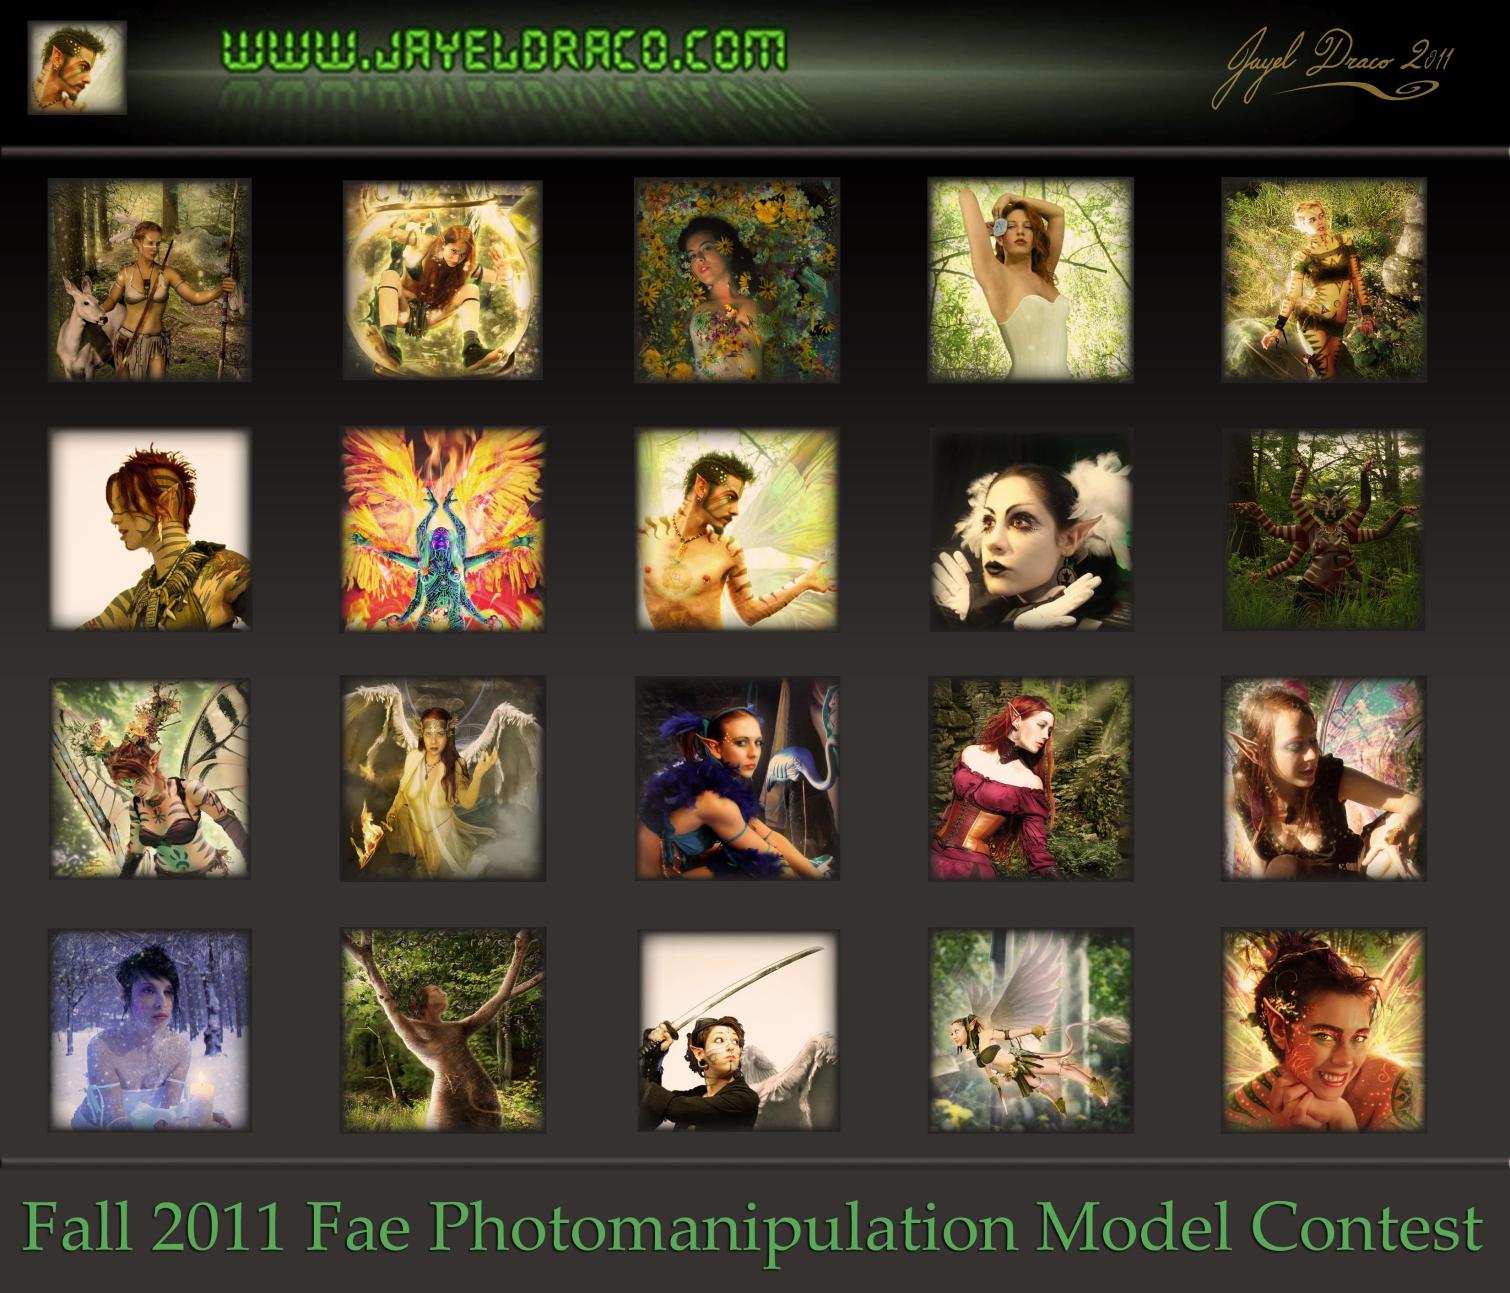 Jayel Draco's Fall 2011 - Photomanipulation Model Contest Flyer